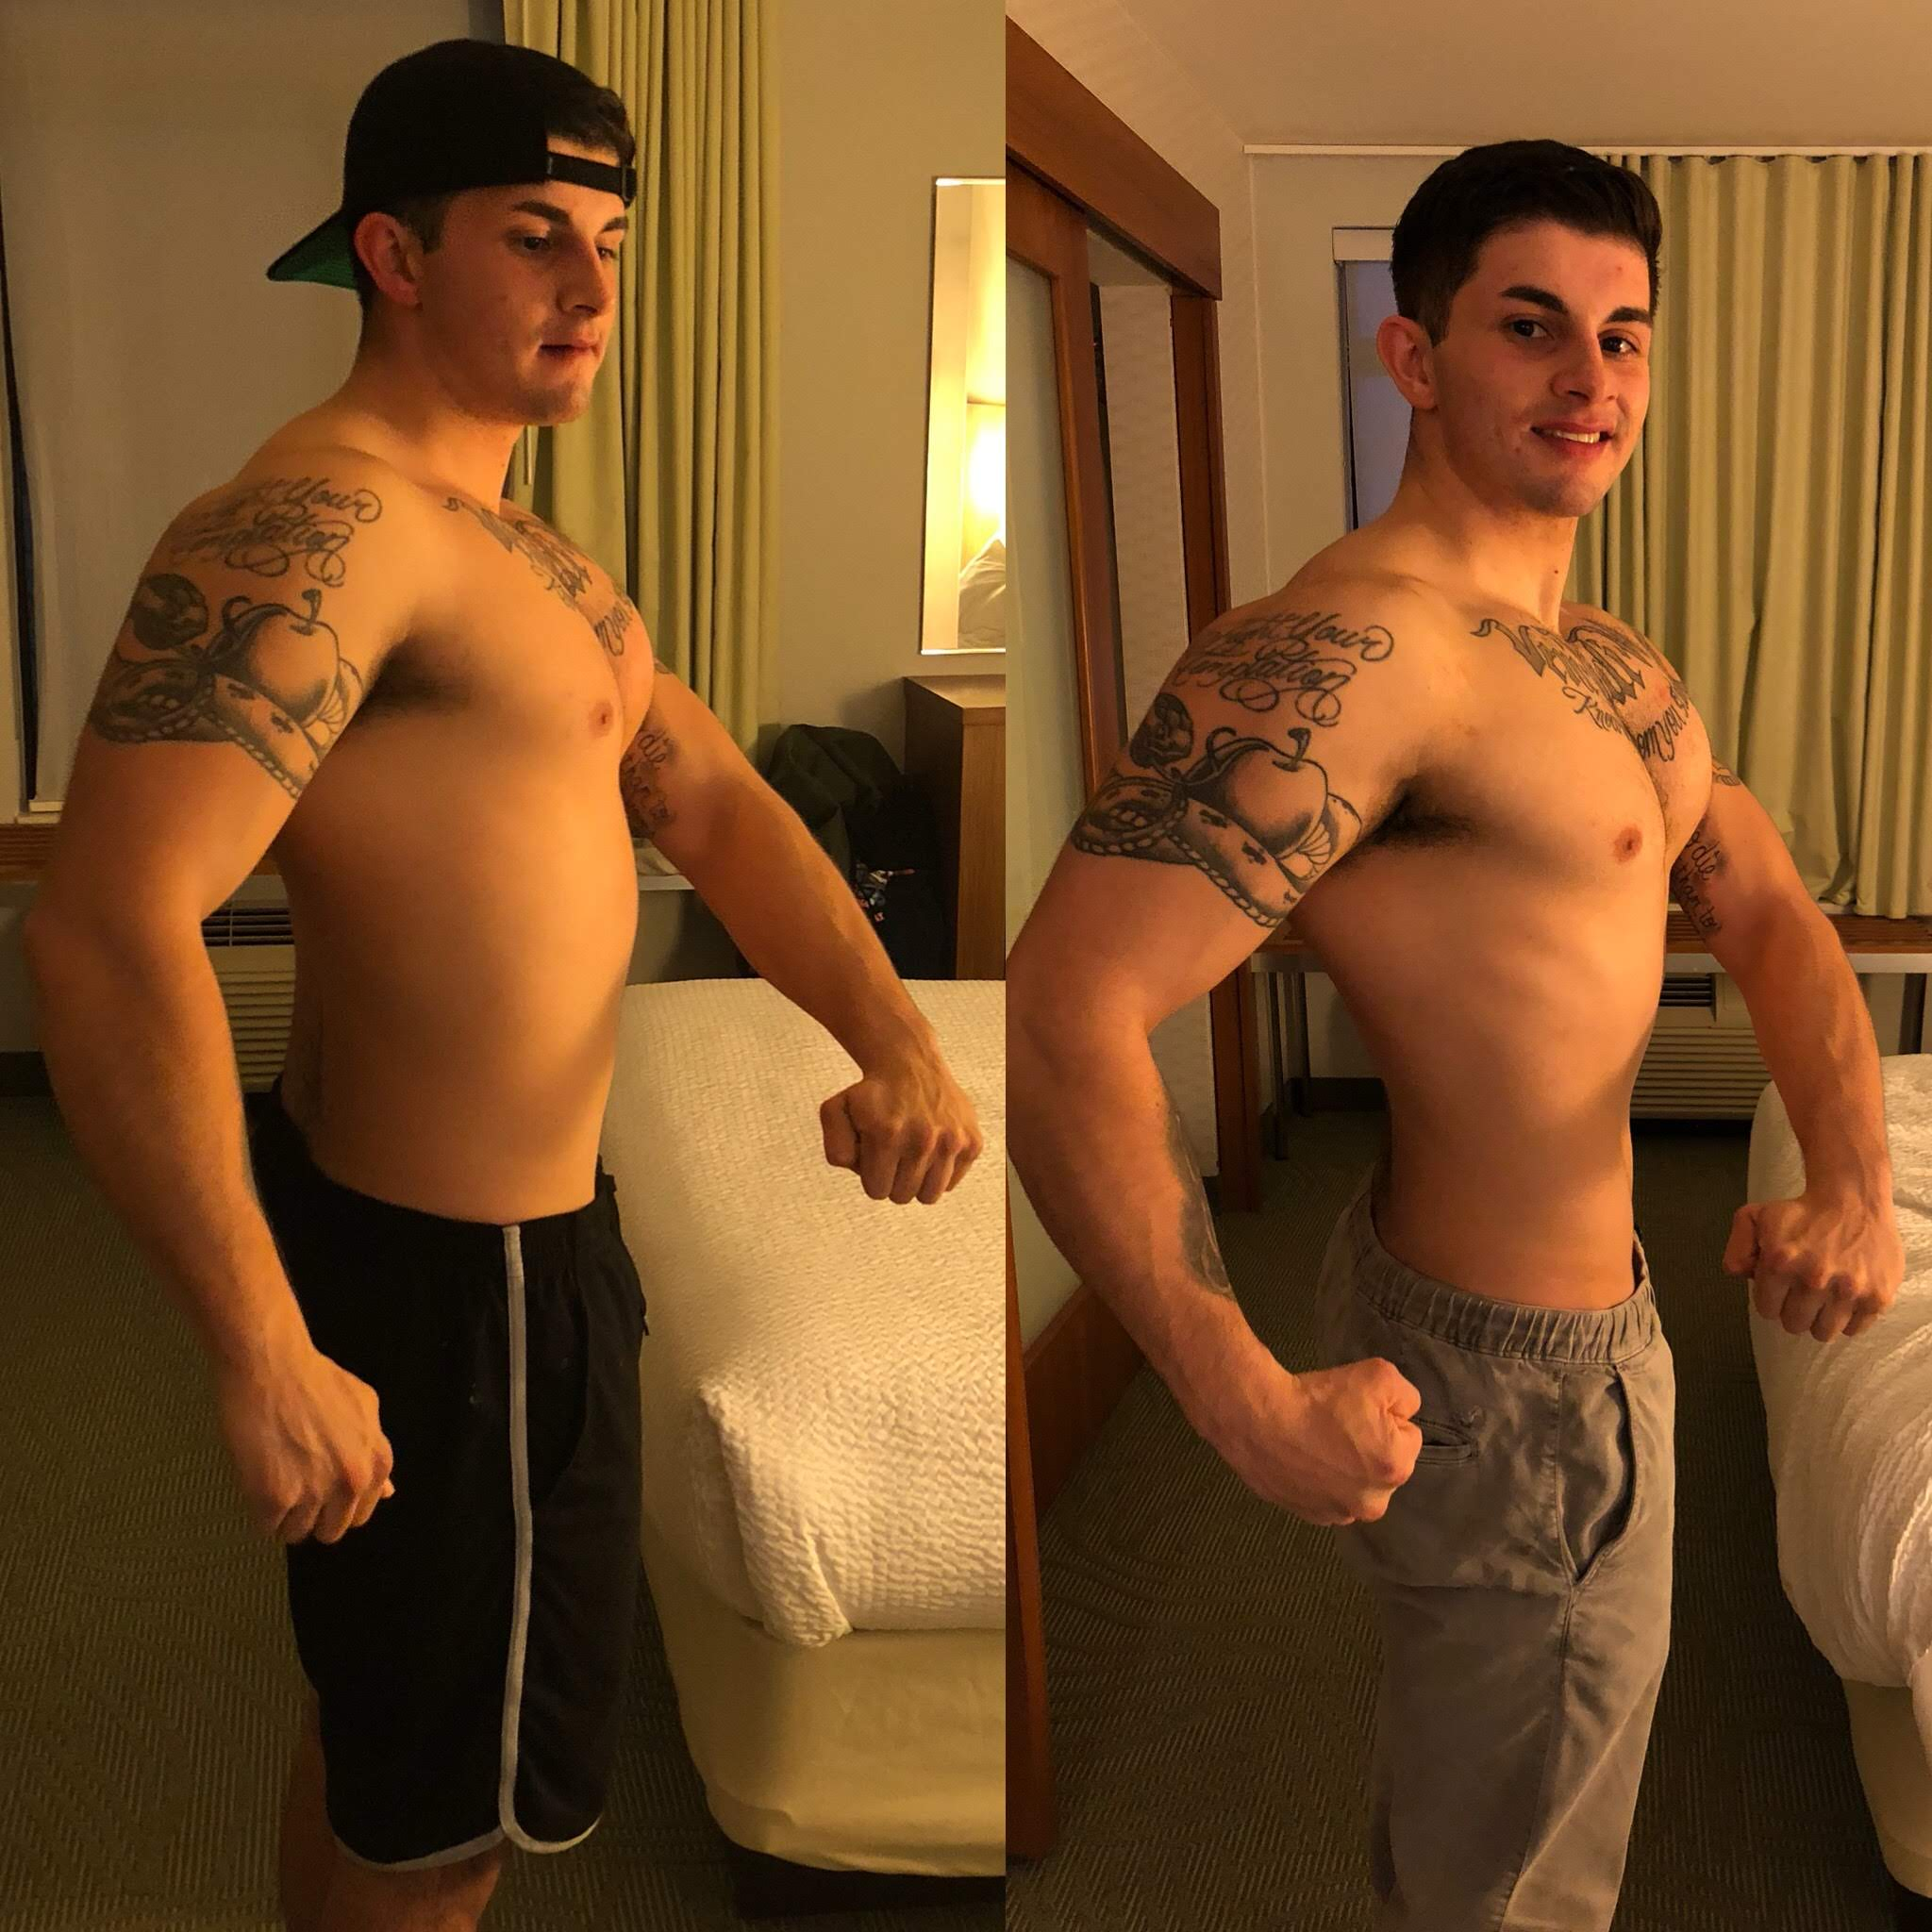 1 Month Dieting - Alan is a Macro dieter. Meaning, eating whatever he likes, as long as it fits his daily caloric intake. I had him drop weight fast with eating ice cream, Panda express, Chipotle. All I did was control his calories, and by him eating the right amount of food everyday, we had success.